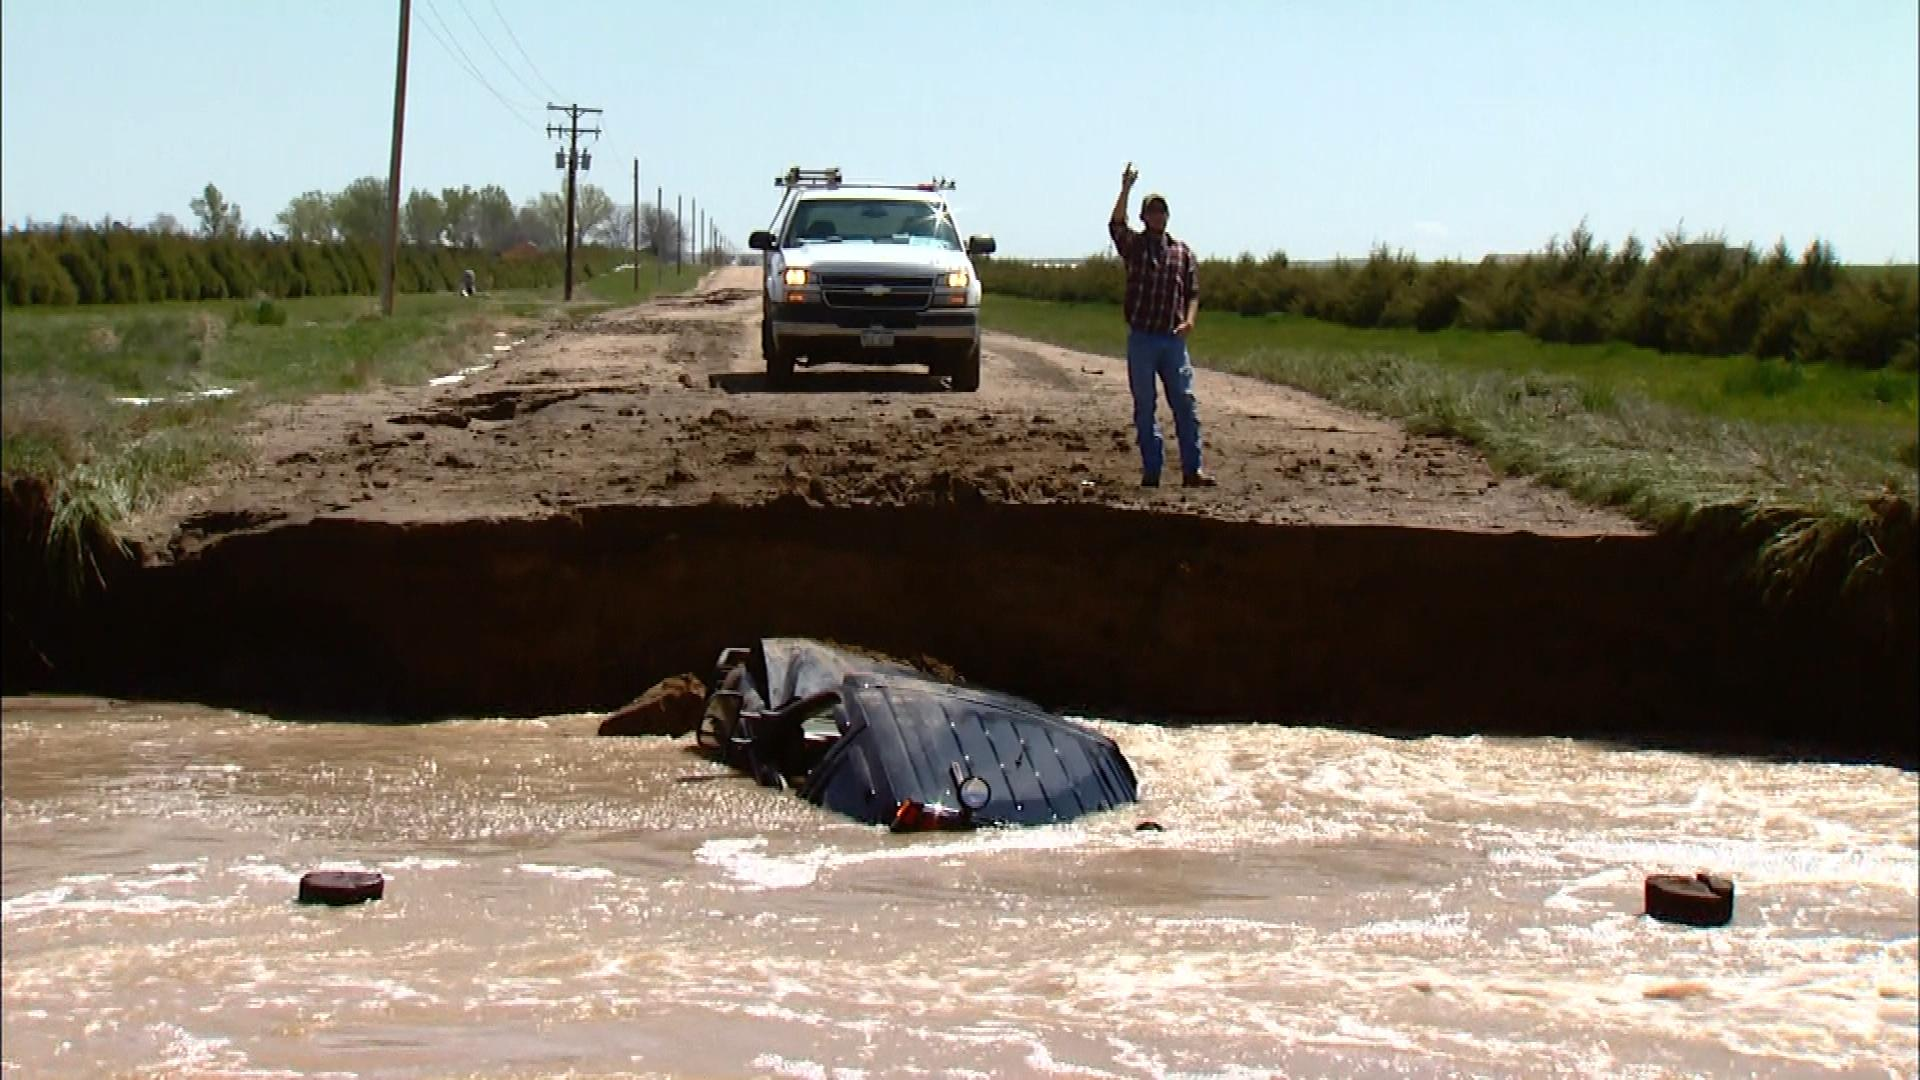 A Jeep caught in a flood south of Wiggins (credit: CBS)